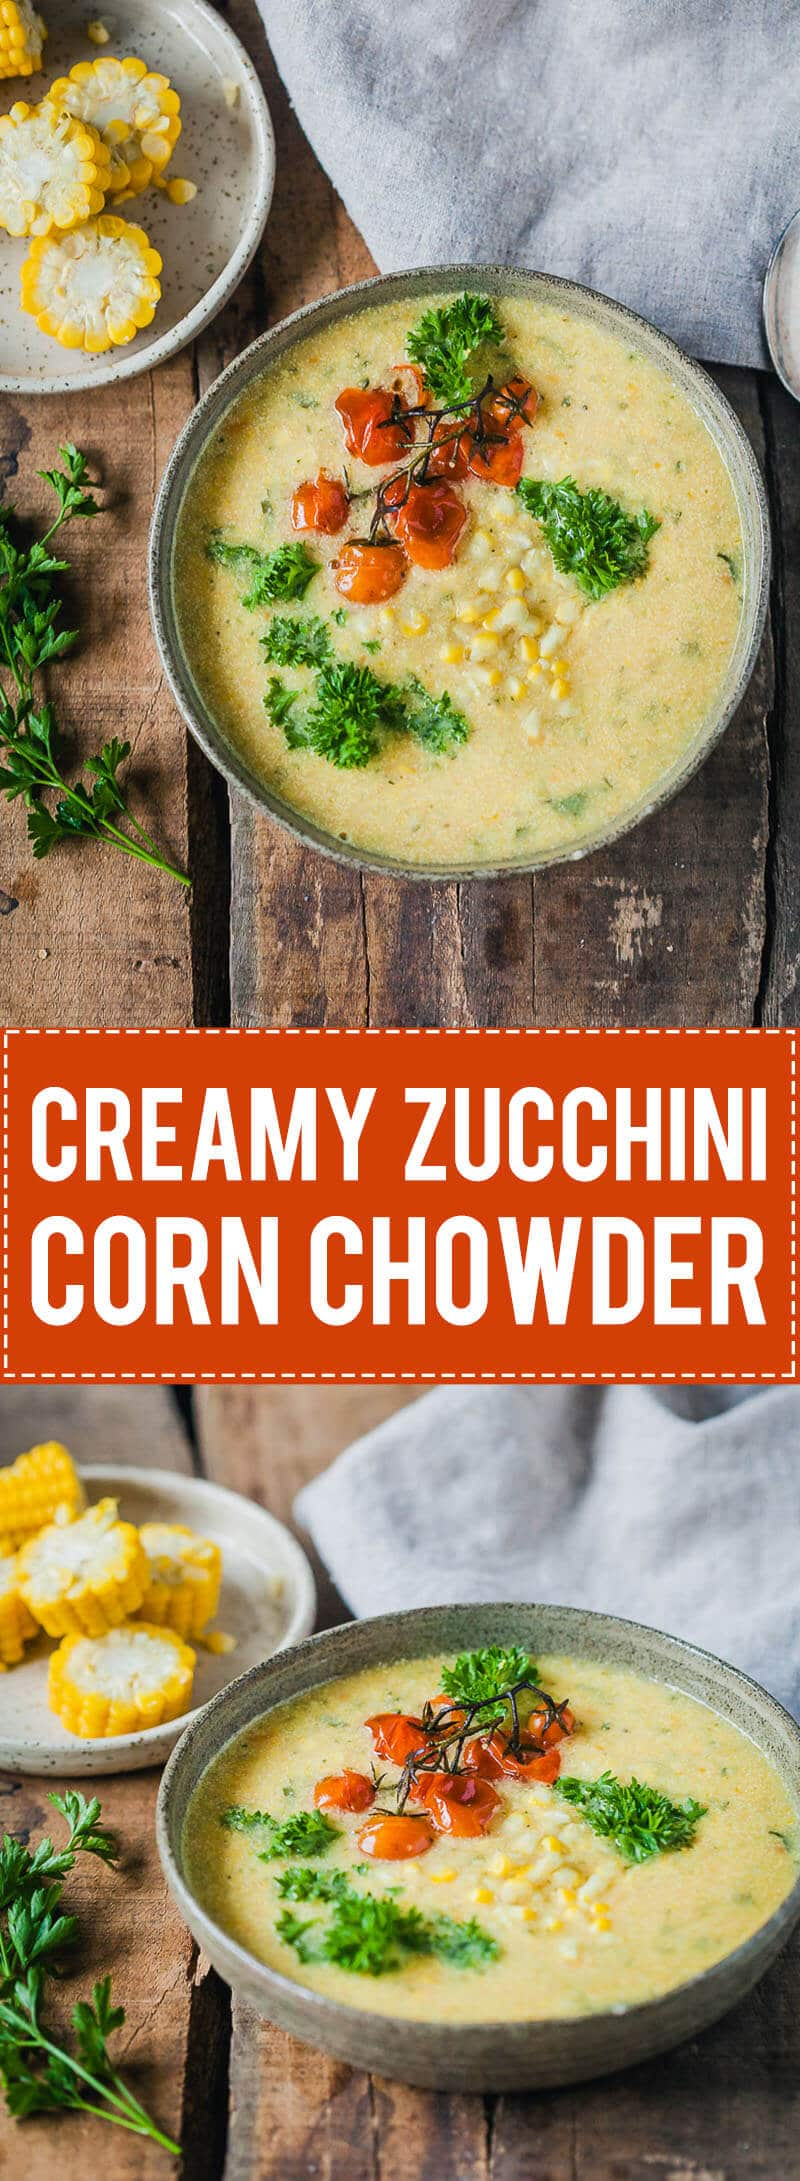 This Zucchini Corn Chowder is packed full of veggies, creamy and filling. And it's vegan and gluten-free!   Vibrant Plate